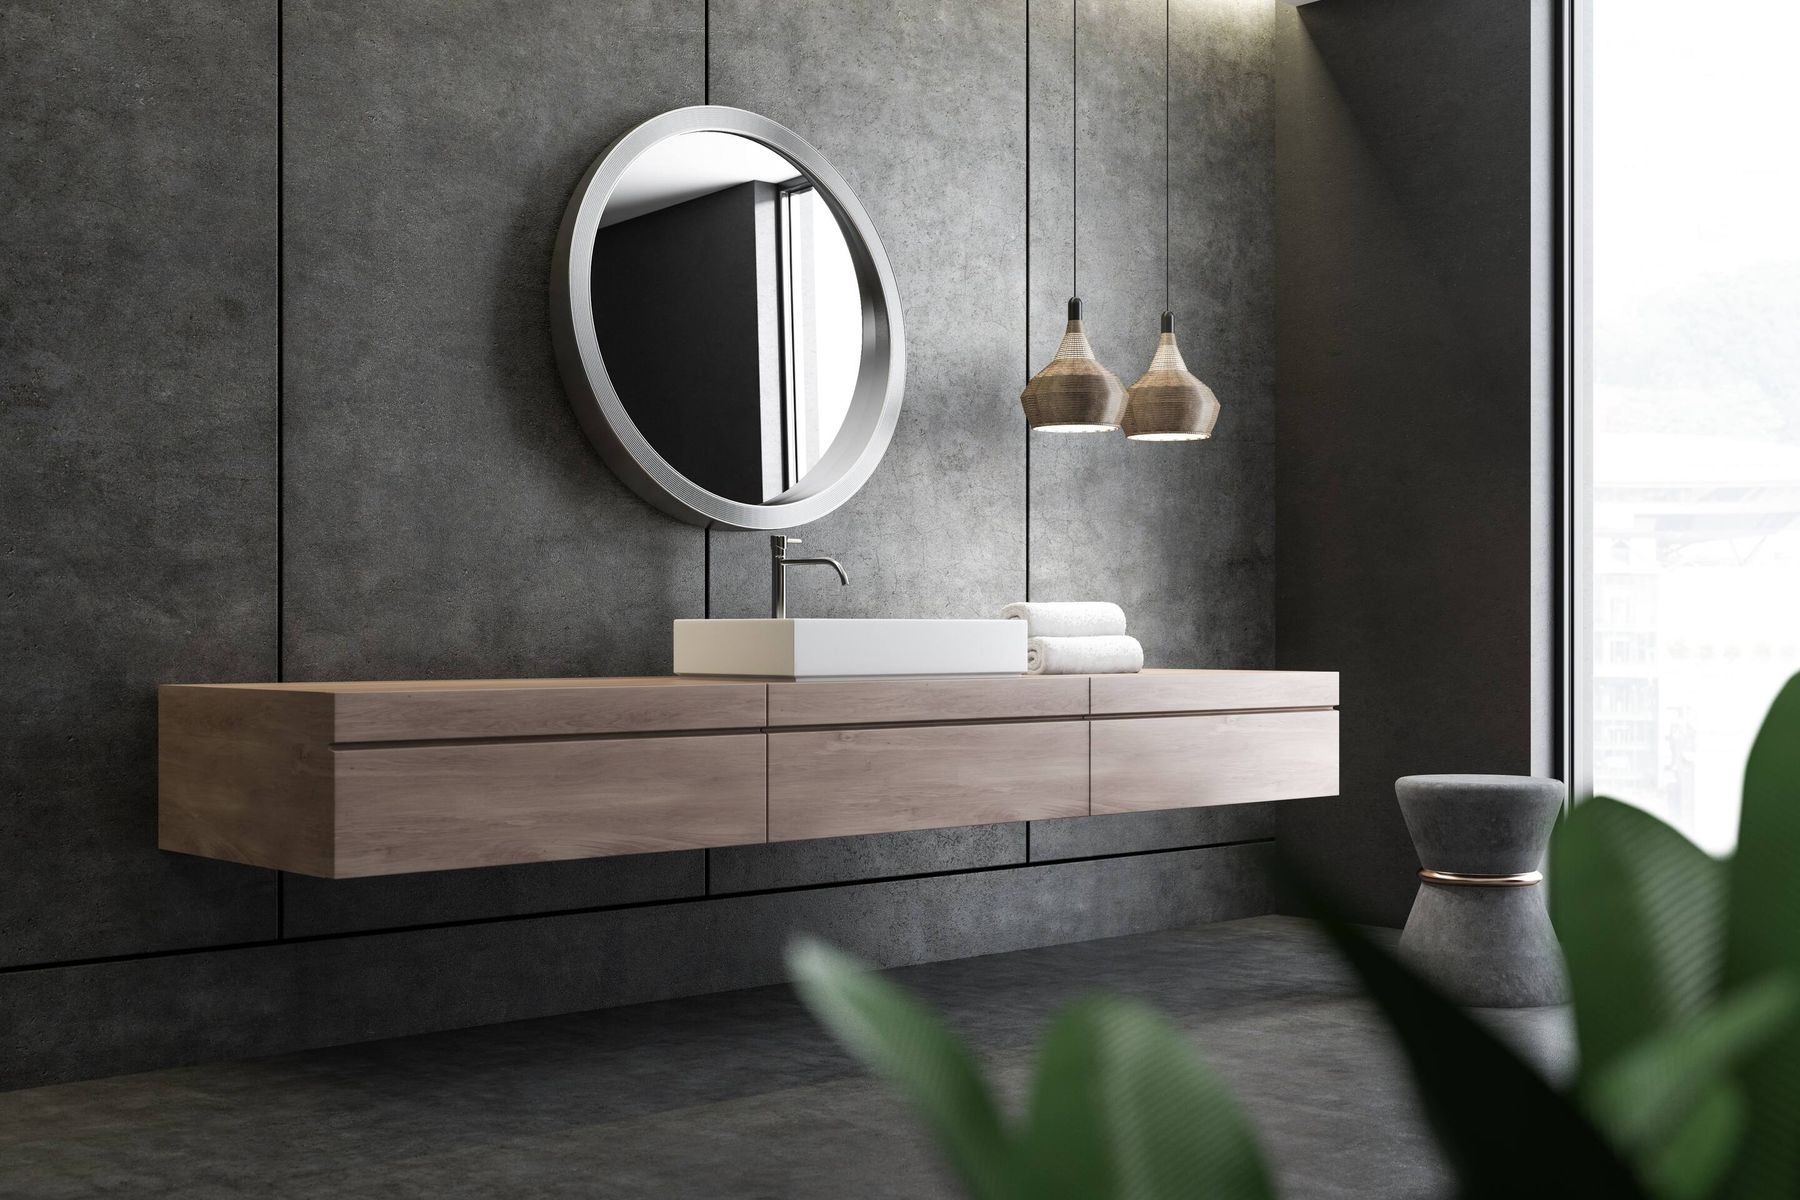 Tips on How to Clean Foggy Bathroom Mirrors | Cleanipedia